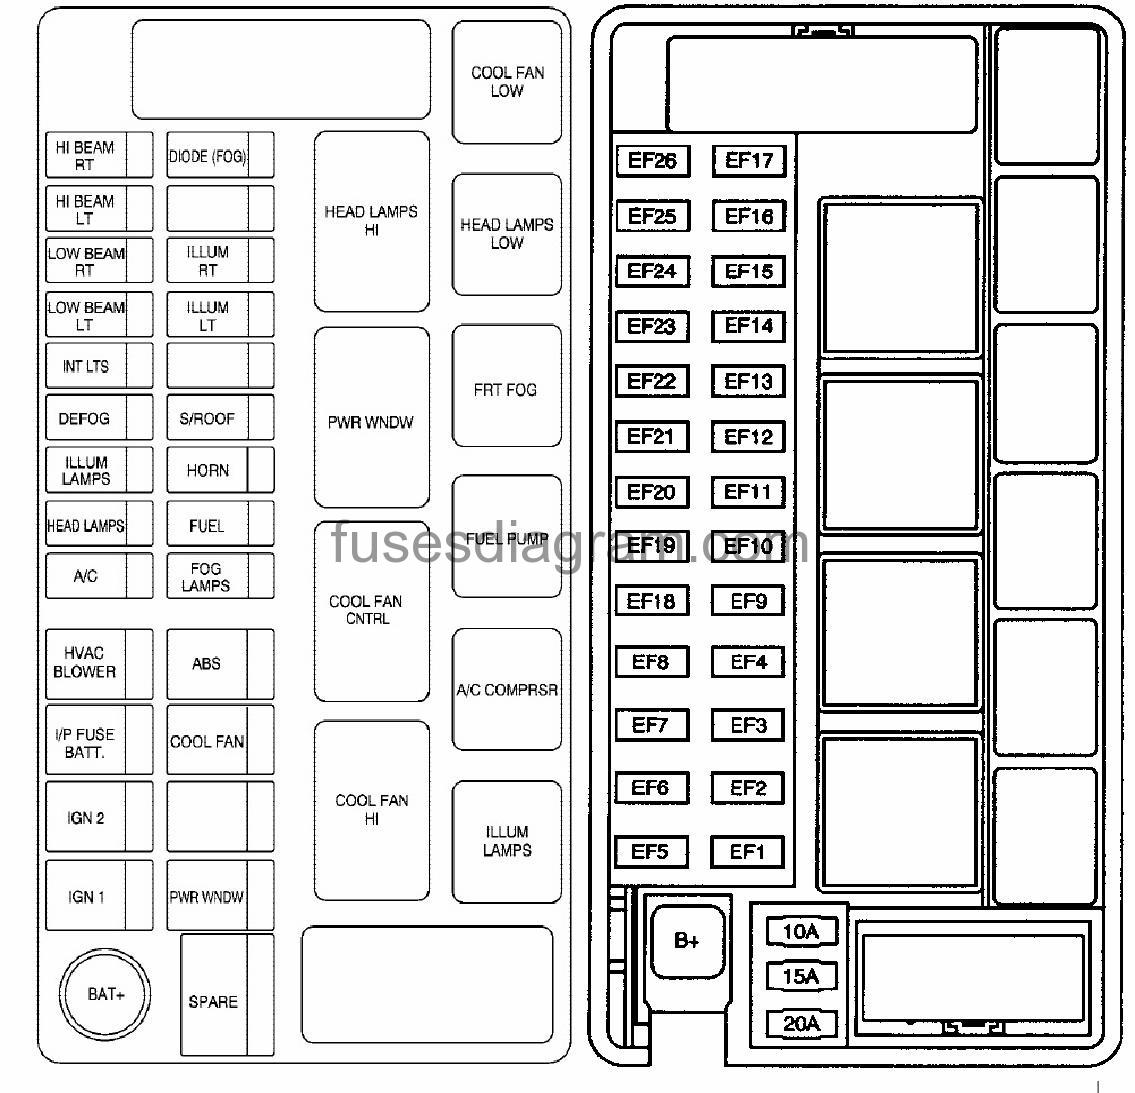 small resolution of 2009 chevy aveo fuse box diagram online wiring diagram datachevrolet aveo fuse box diagram best wiring